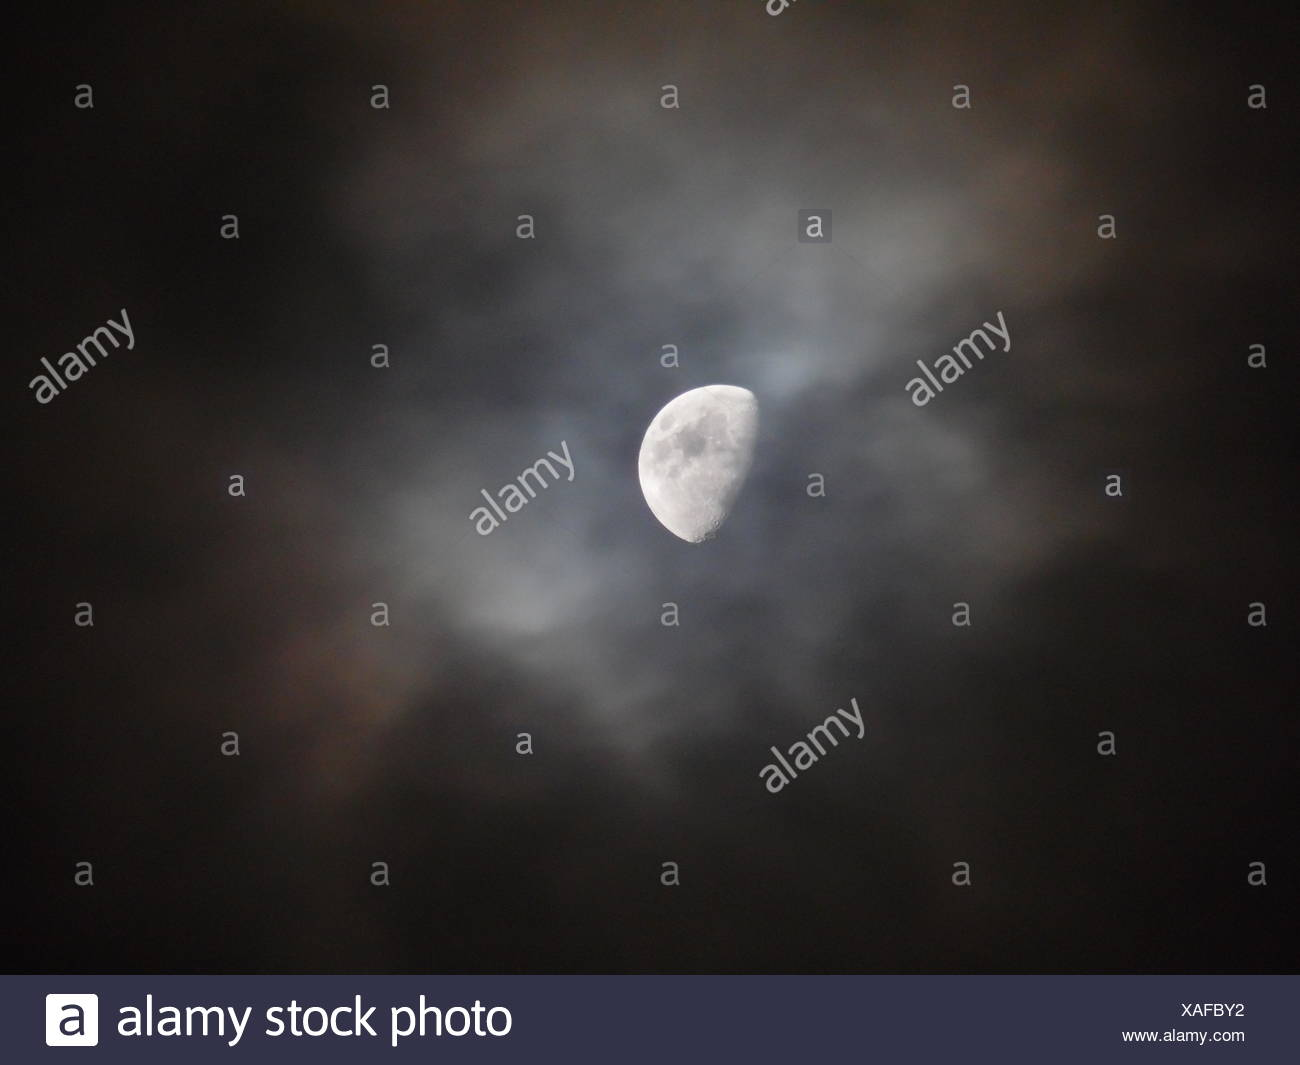 Scenic View Of Moon At Night - Stock Image